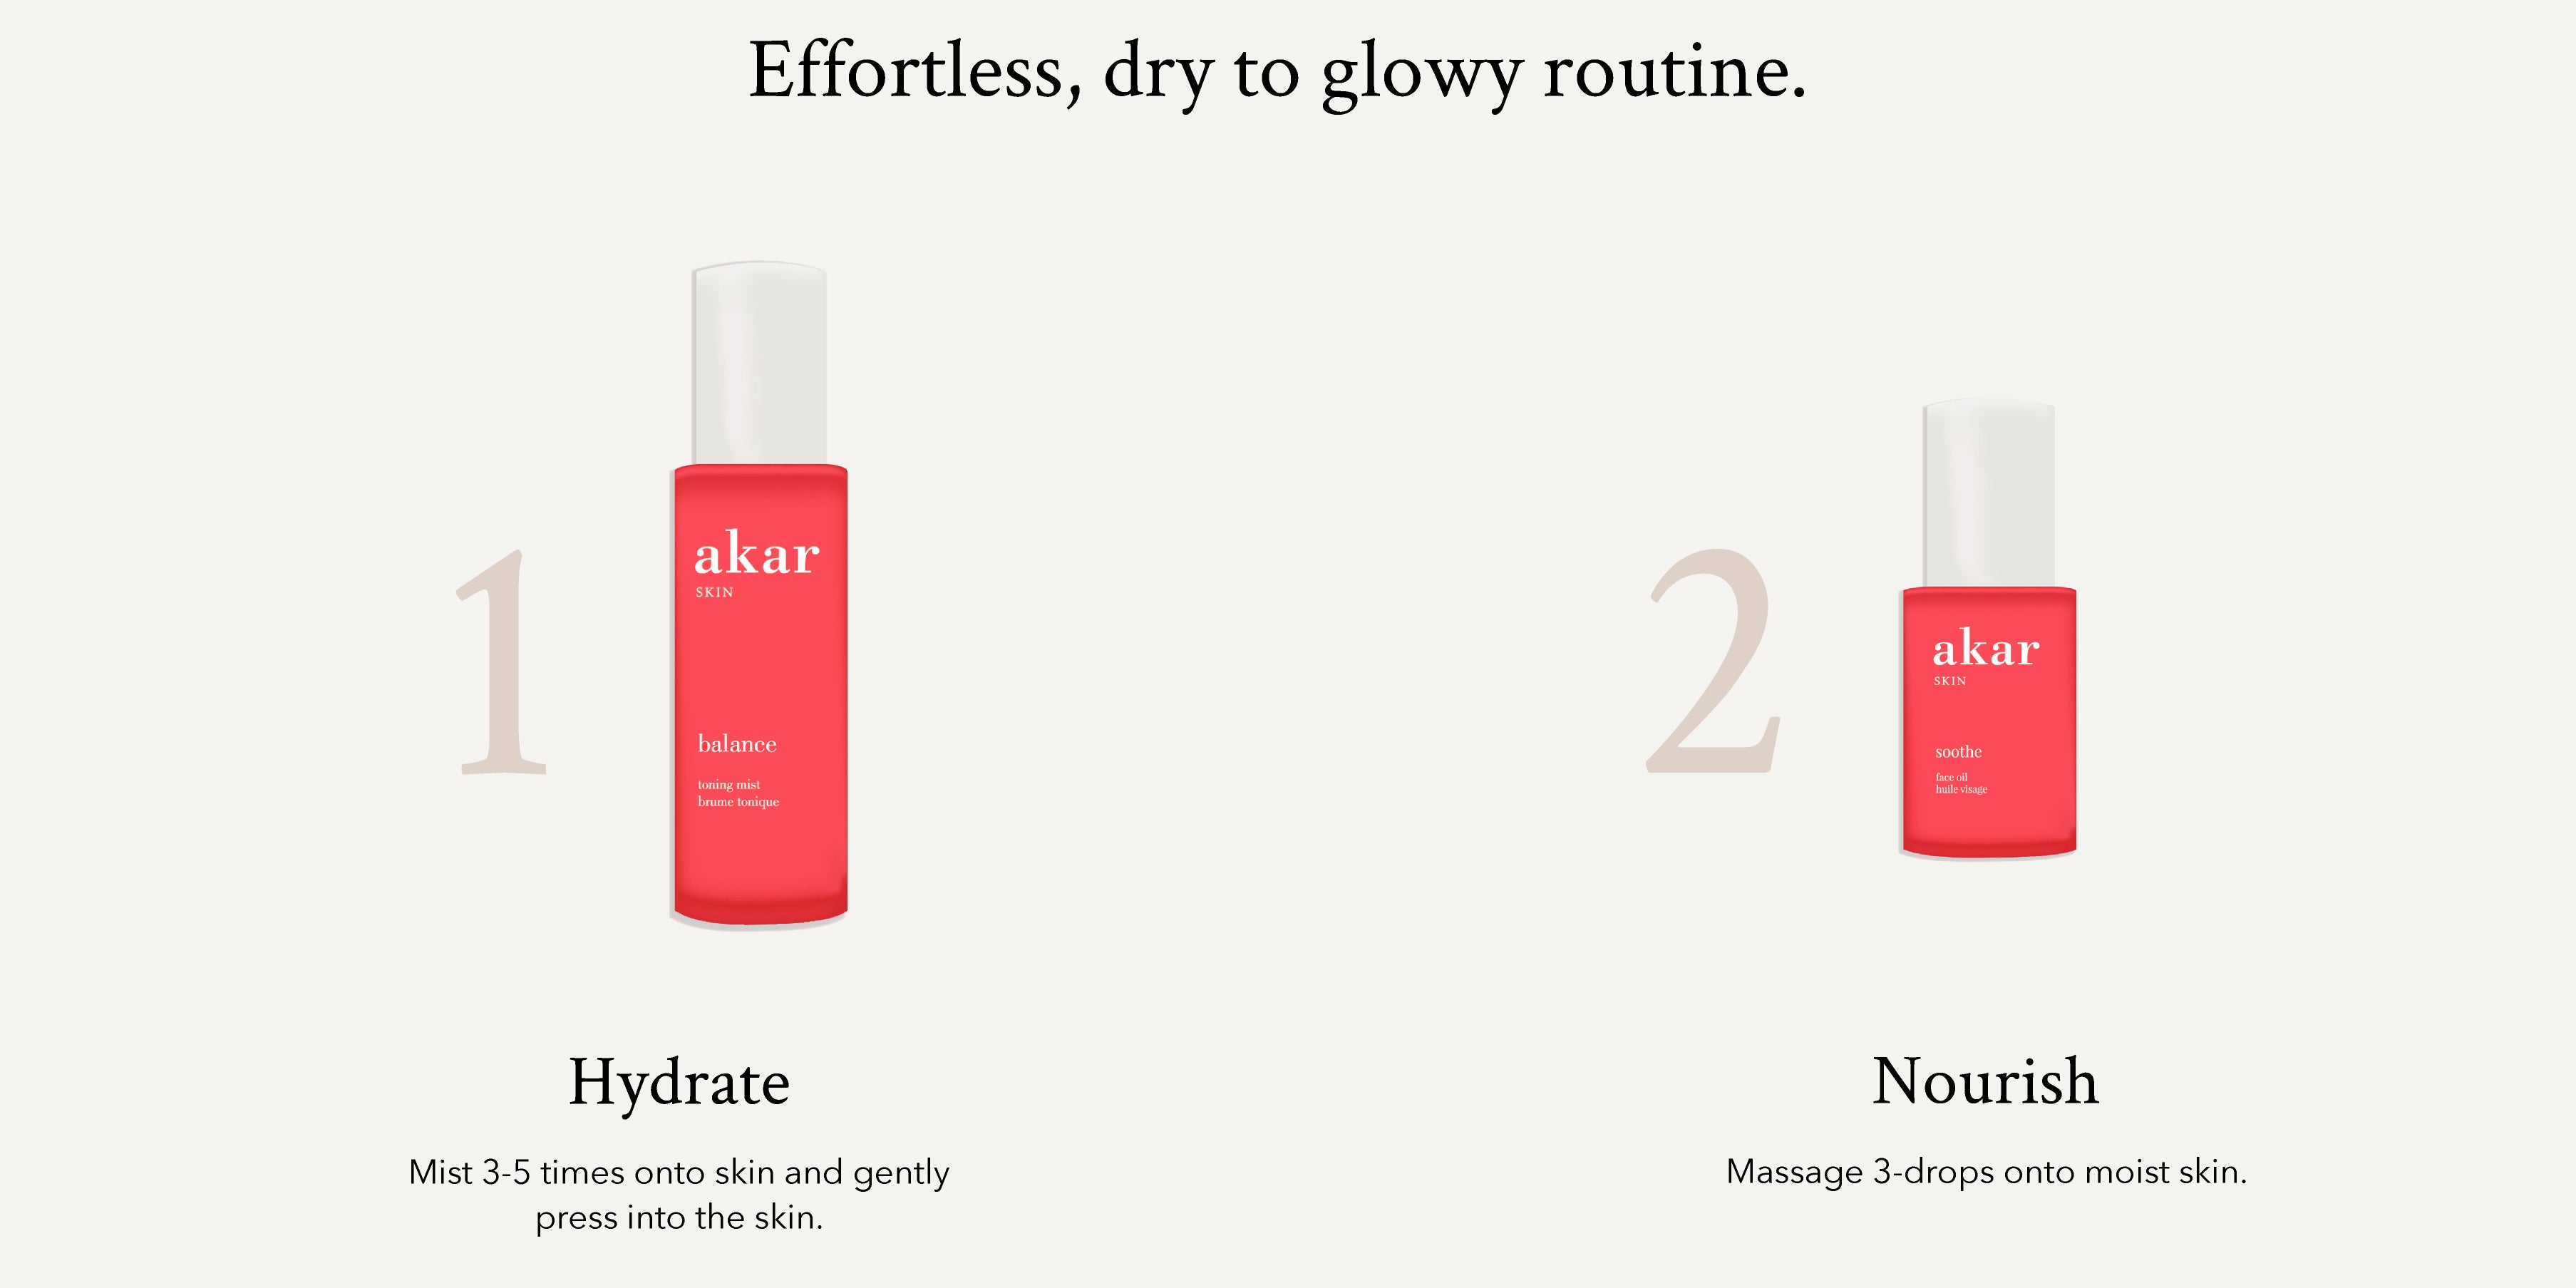 Akar Skin, Soothe Essentials, Balance Toner, Soothe Face Oil, skincare products, illustration, clean beauty, infograph